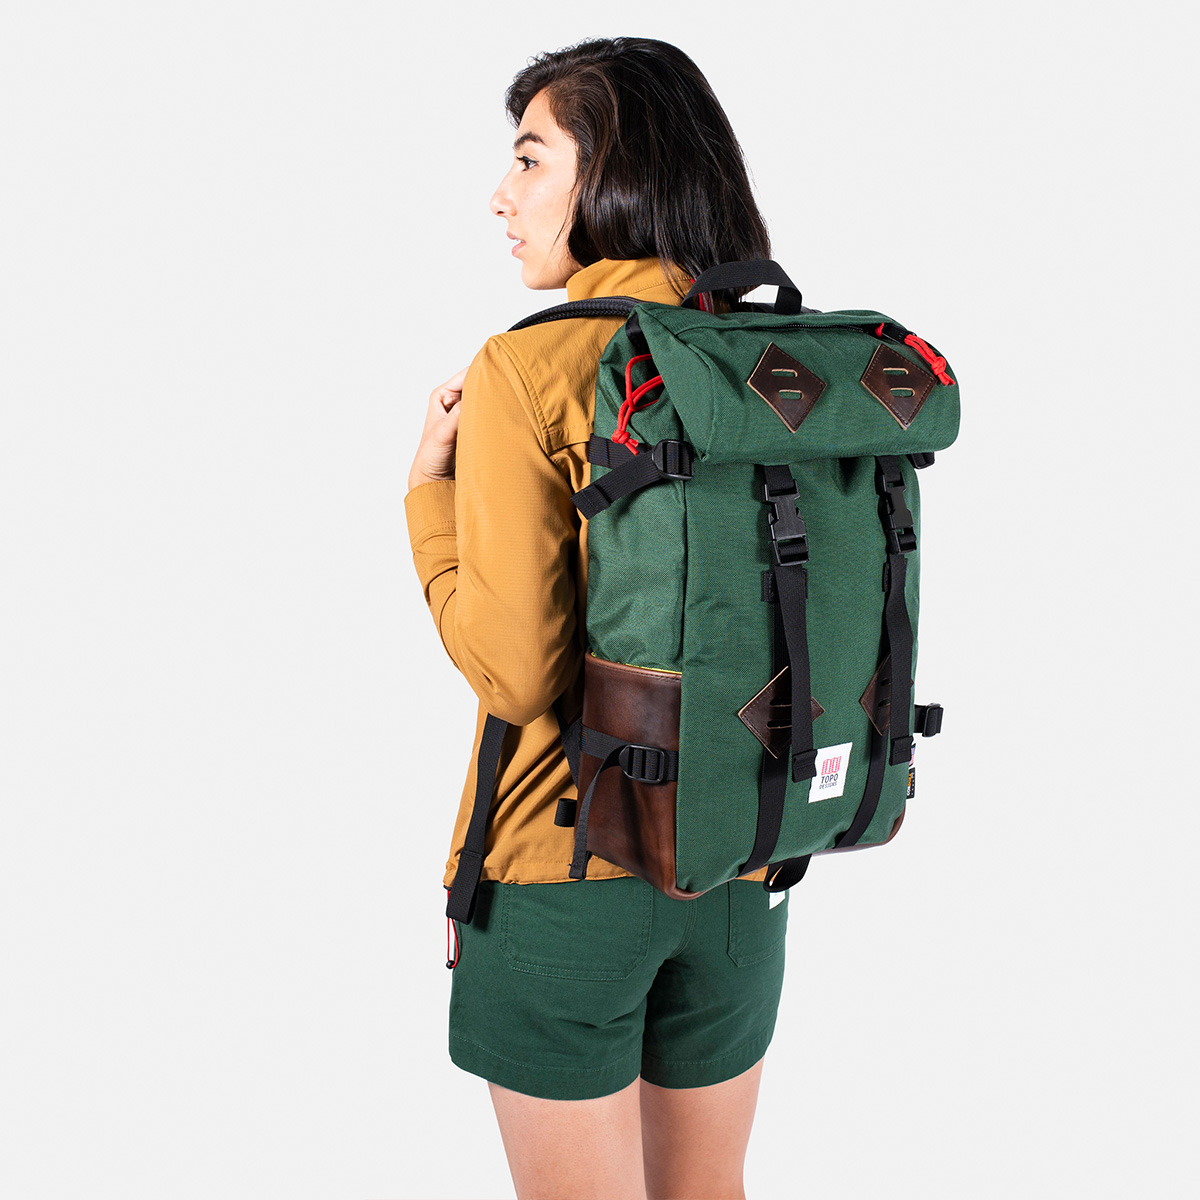 Topo Designs Klettersack Backpack Forest/Brown Leather Lifestyle, perfect backpack for men and women